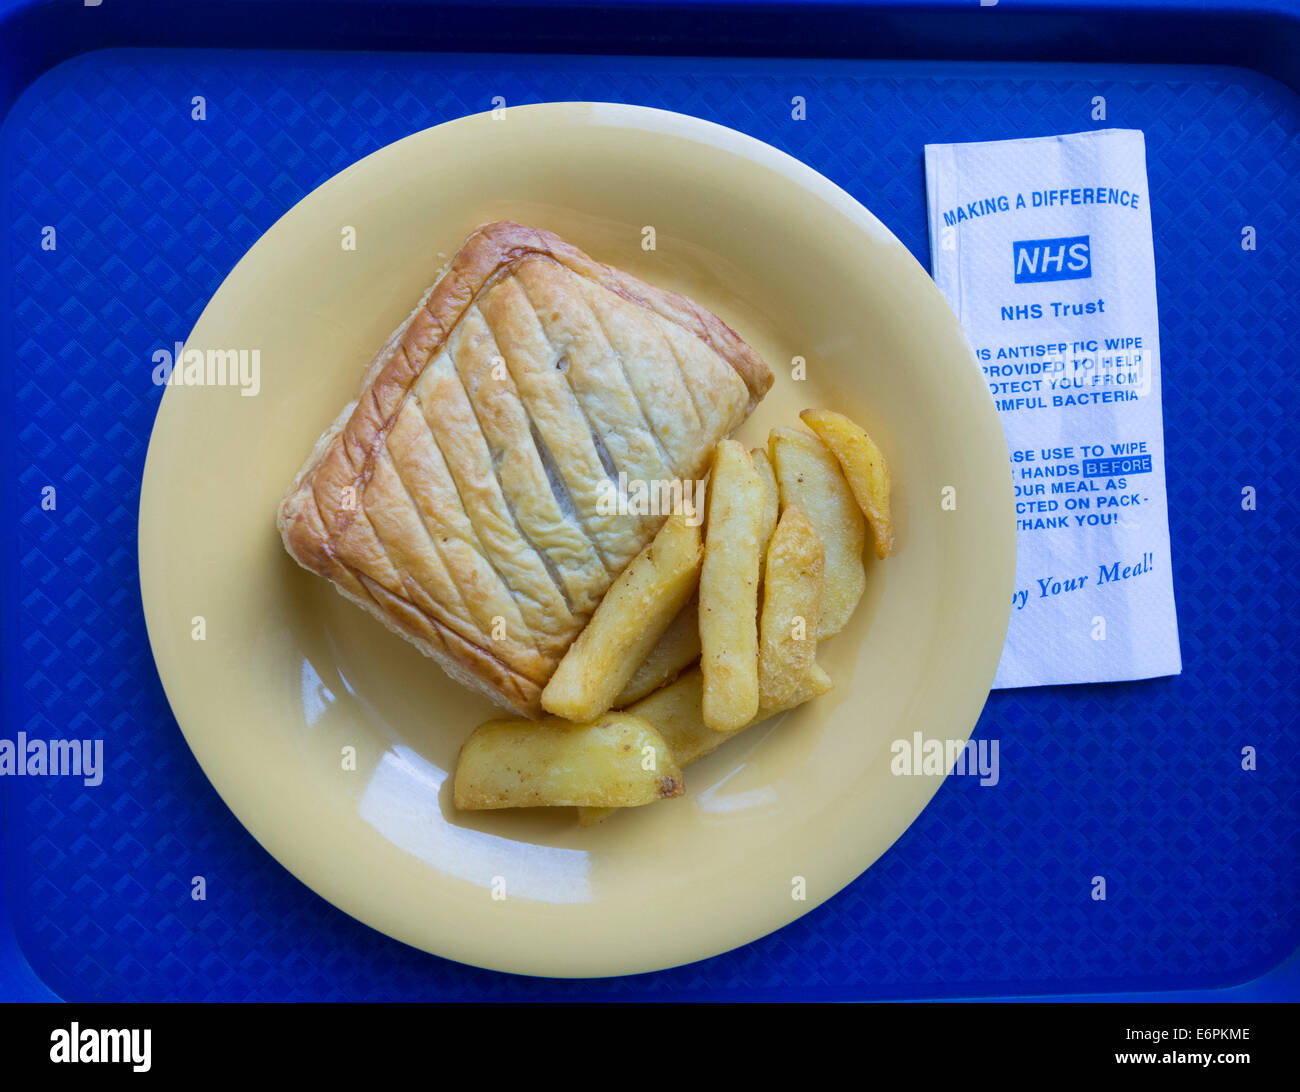 Meal on tray in NHS hospital in England, UK - Stock Image